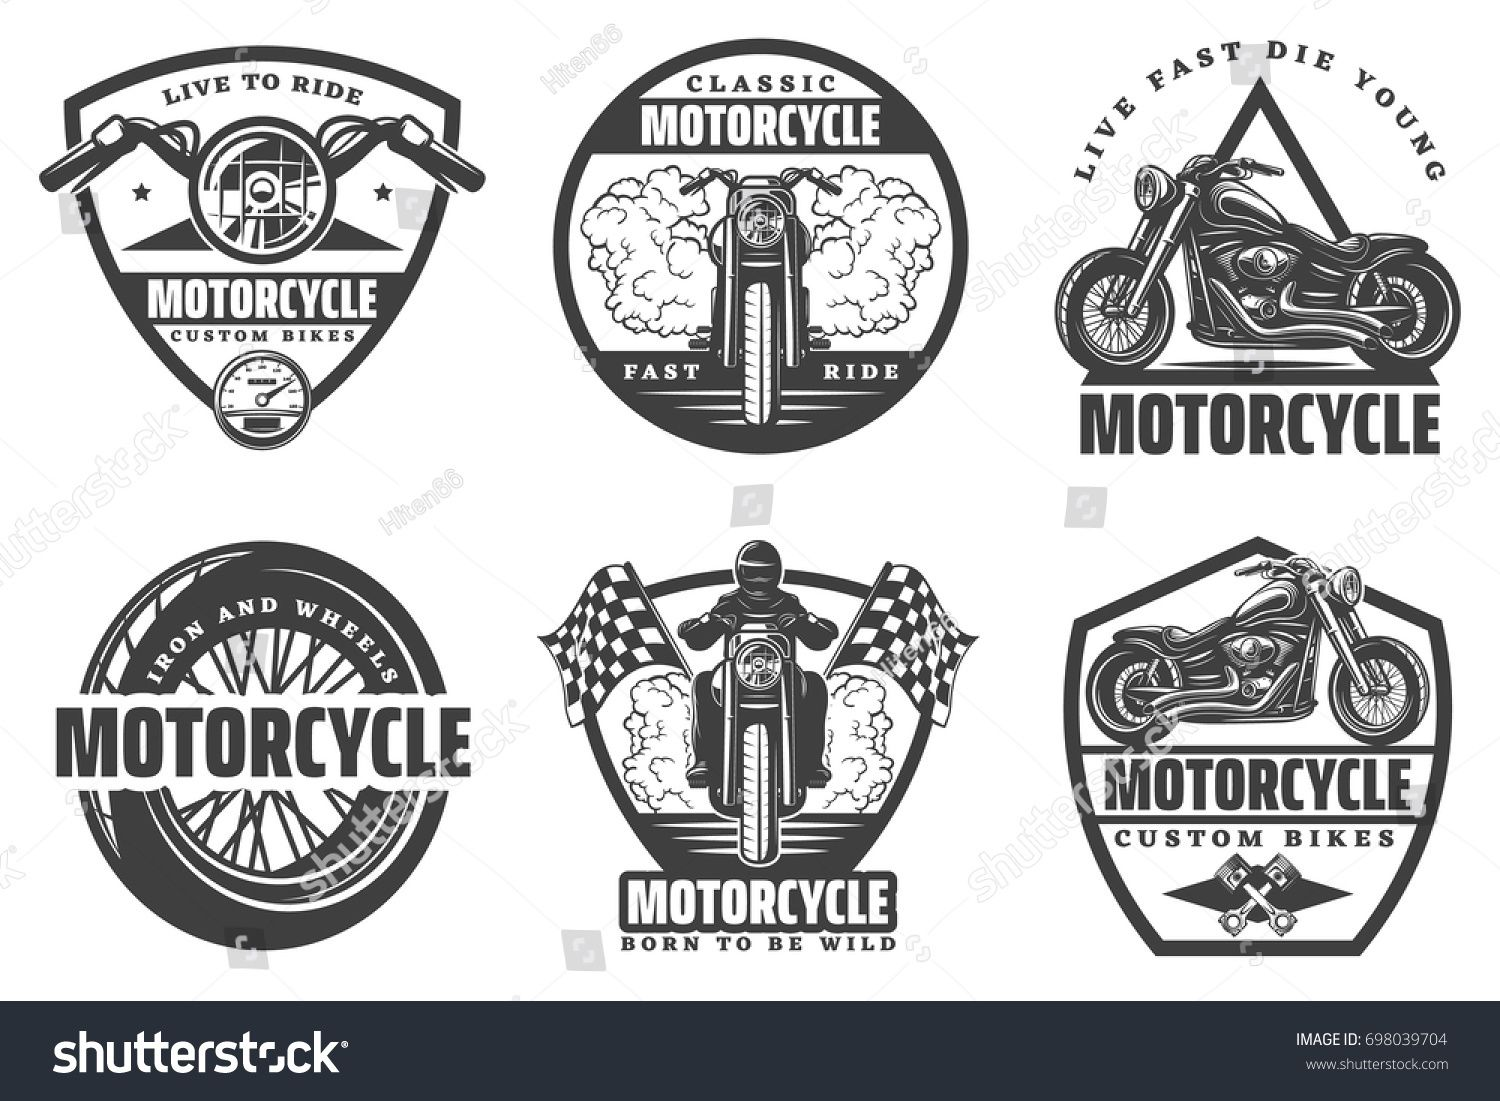 Set Of Motorcycle Monochrome Emblems Labels Logos And Motorbike Badges With Descriptions Of Custom Bikes Motorbike Logo Custom Bikes Cafe Racers Custom Bikes